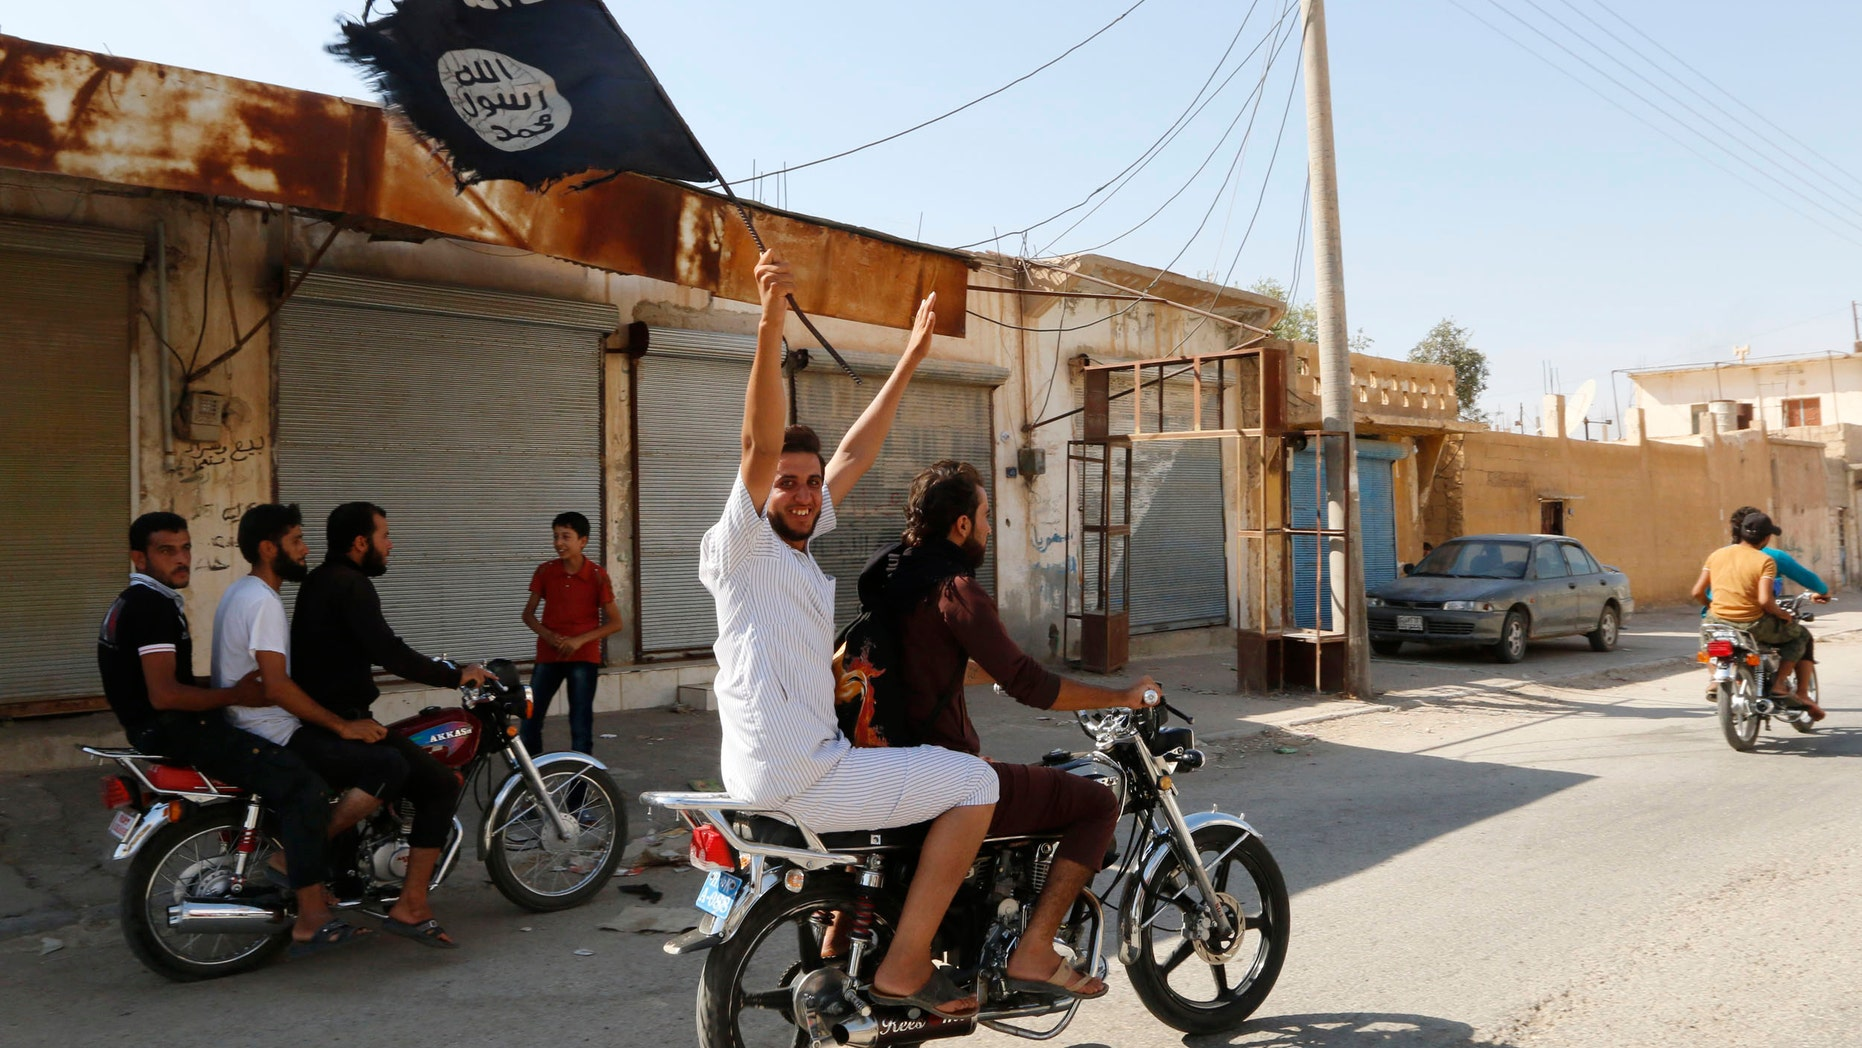 August 24, 2014: A resident of Tabqa city touring the streets on a motorcycle waves an Islamist flag in celebration after Islamic State militants took over Tabqa air base, in nearby Raqqa city. (Reuetrs)